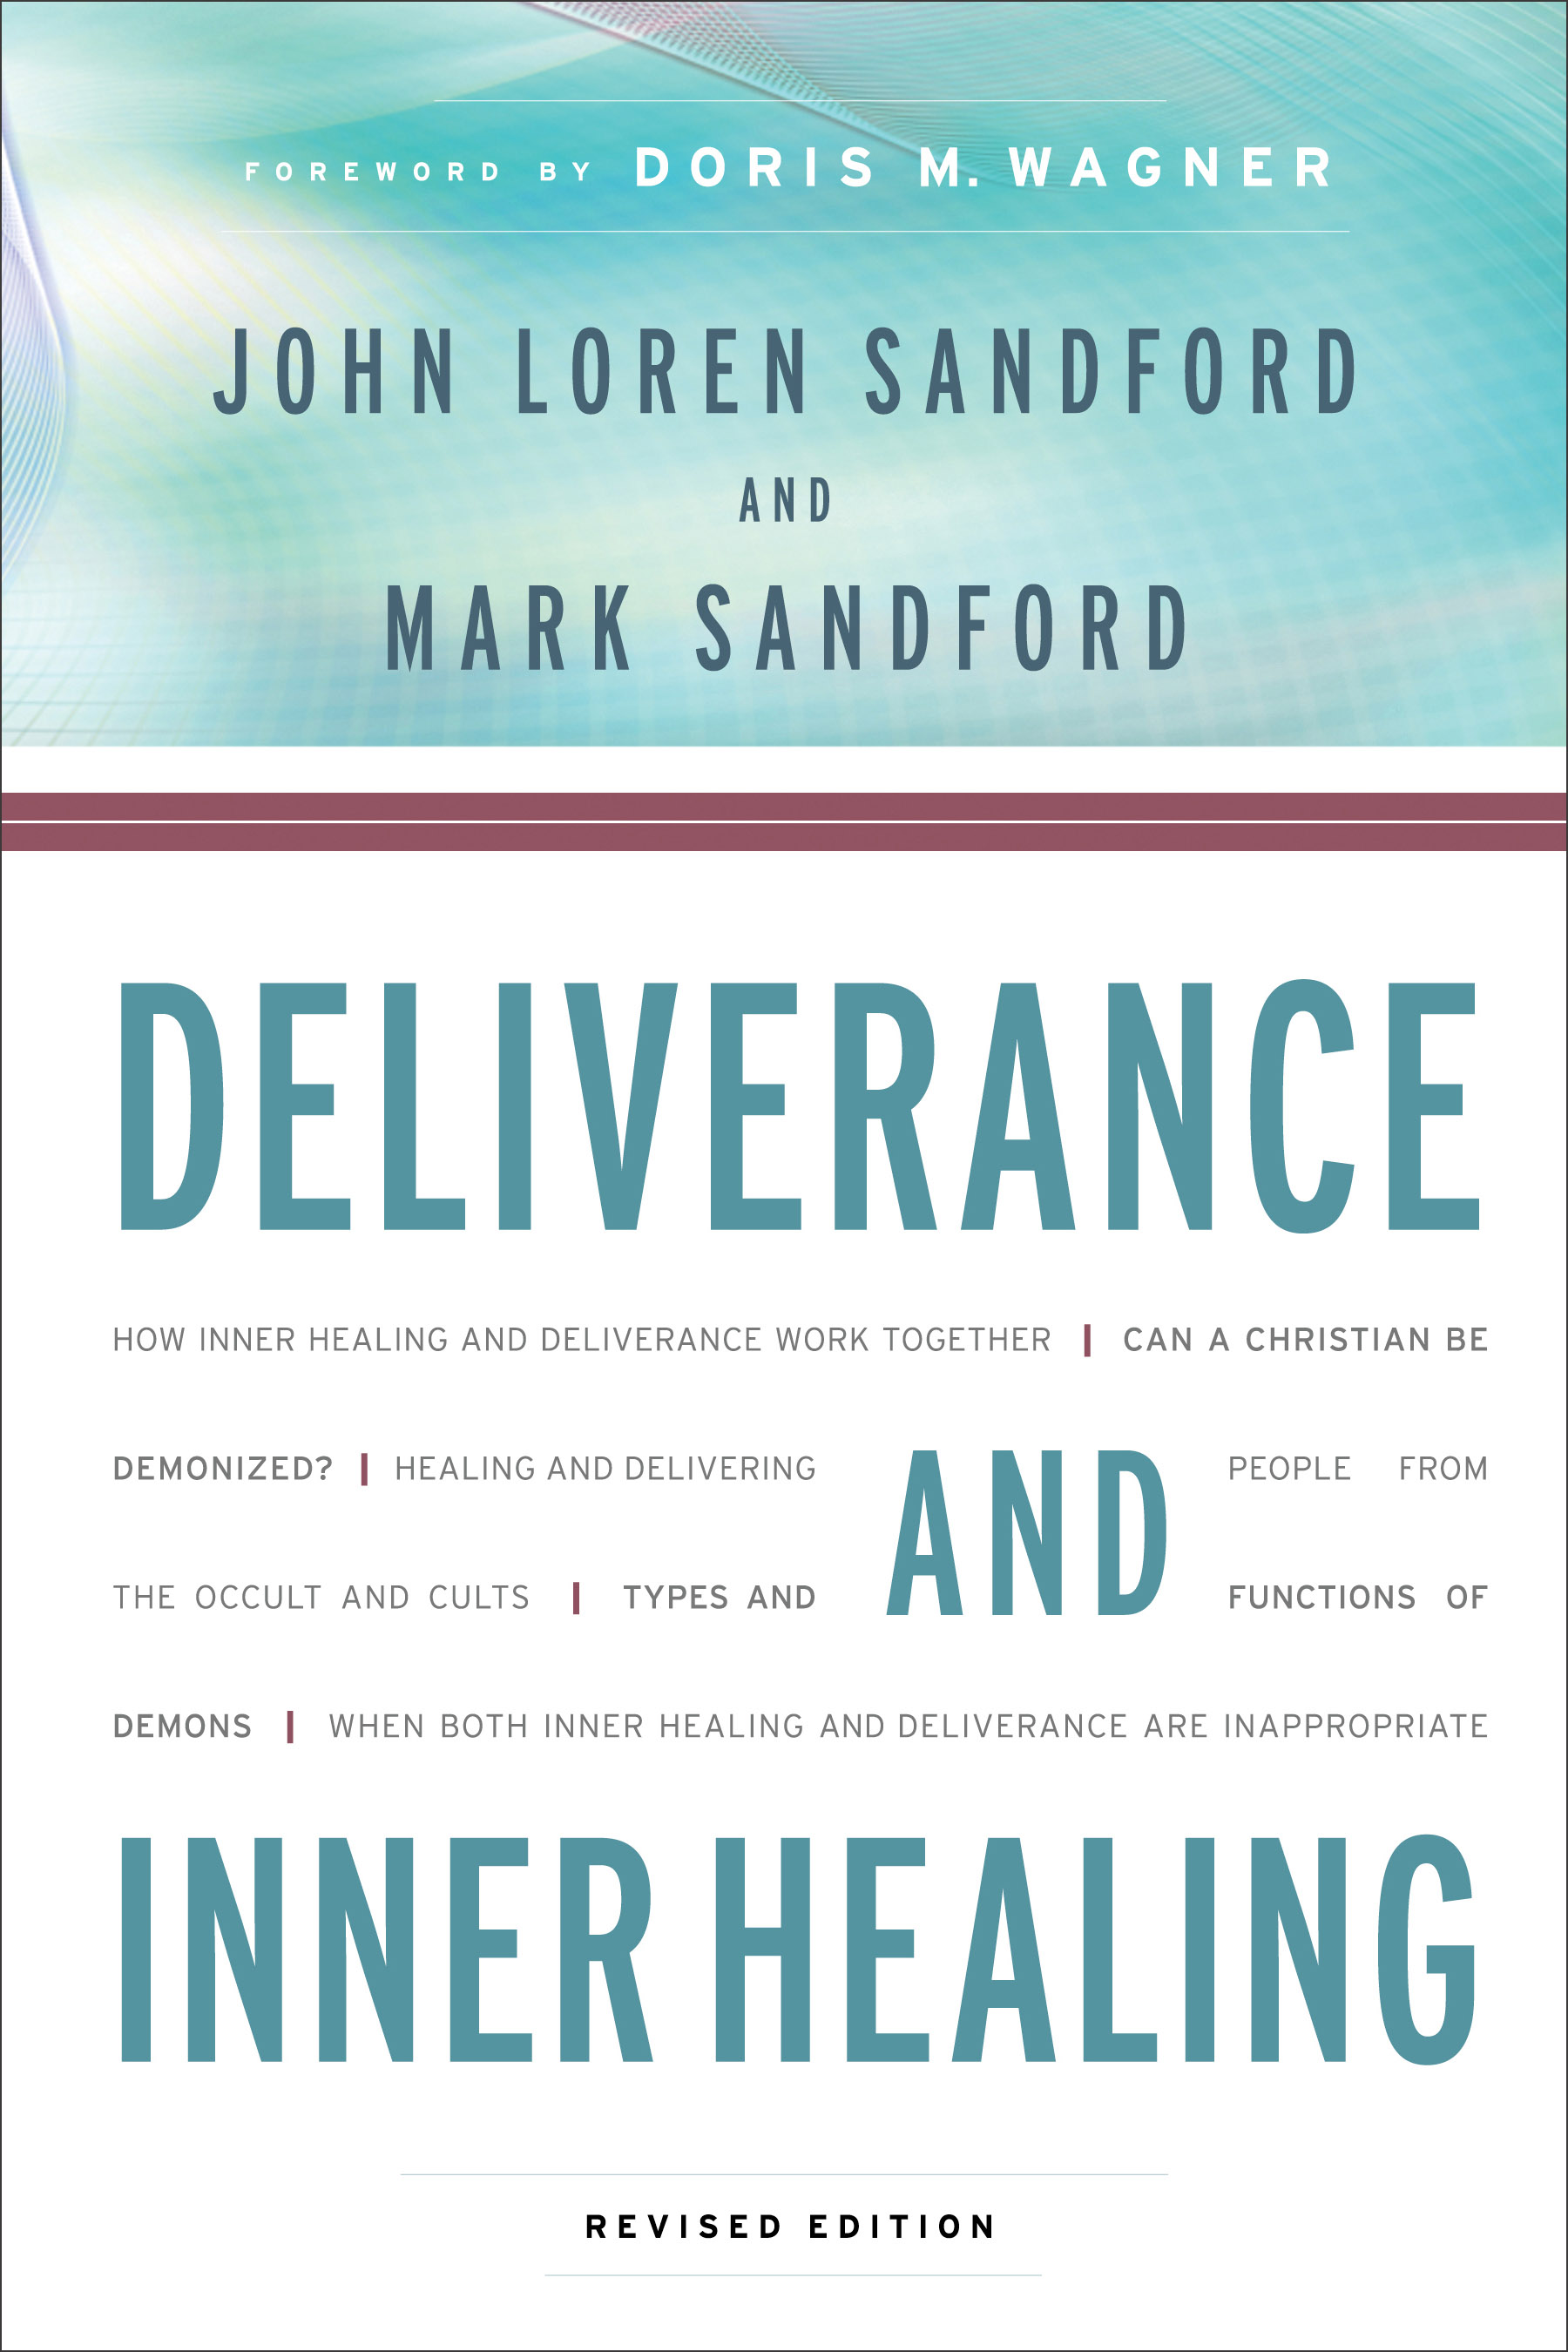 Deliverance and Inner Healing, Revised Edition | Baker Publishing Group